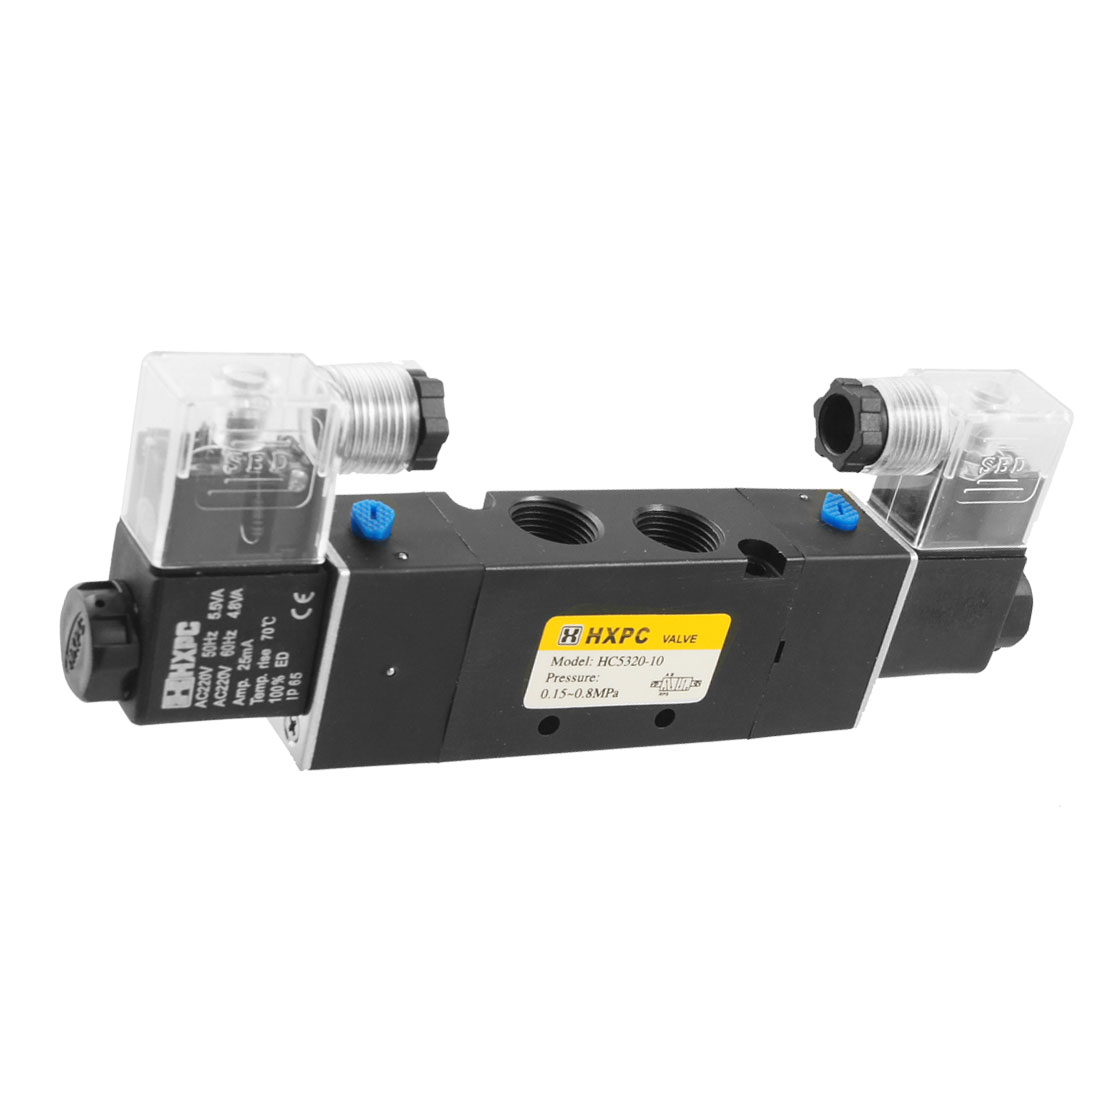 HC5320-10 AC 220V 25mA Pneumatic Solenoid Filter Air Valve 5 Port 2 Position